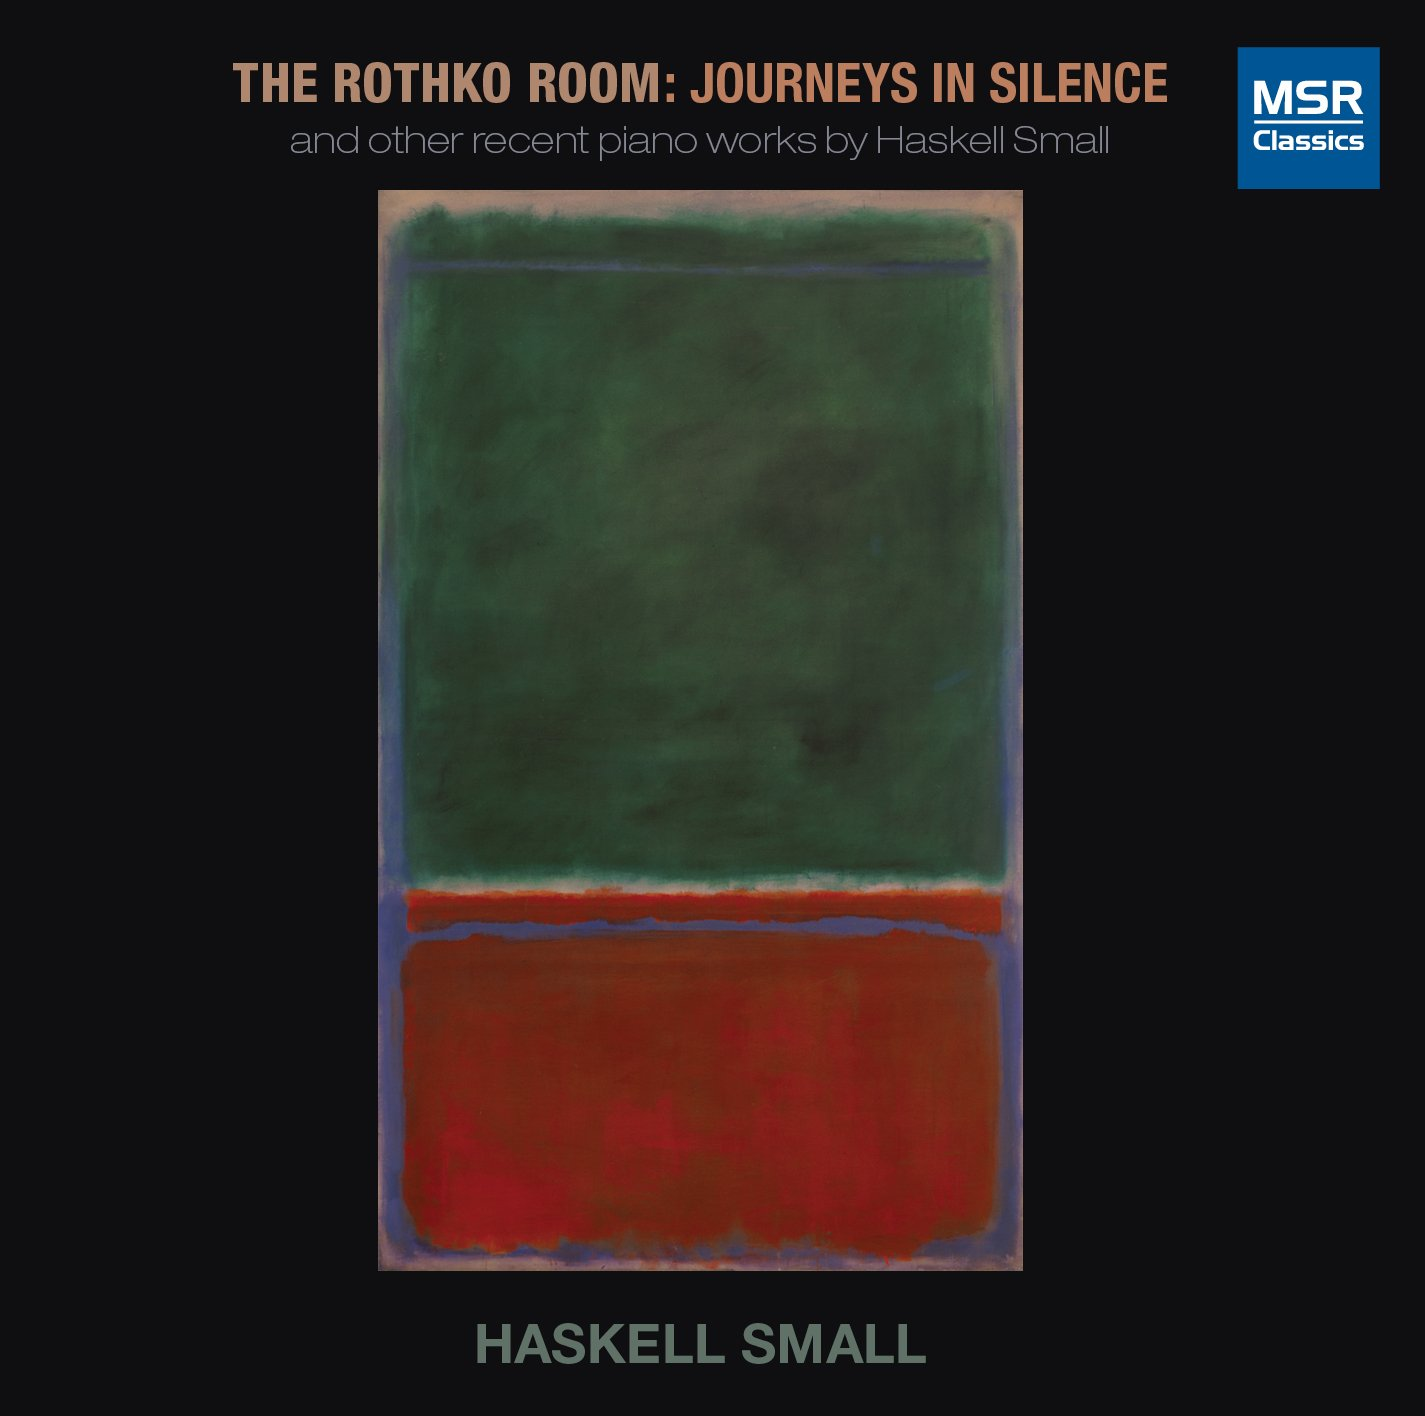 Haskell Small: The Rothko Room - Journeys in Silence (2010), and other recent piano works; Visions of Childhood (2011); A Glimpse of Silence (2013) [World Premiere Recordings]